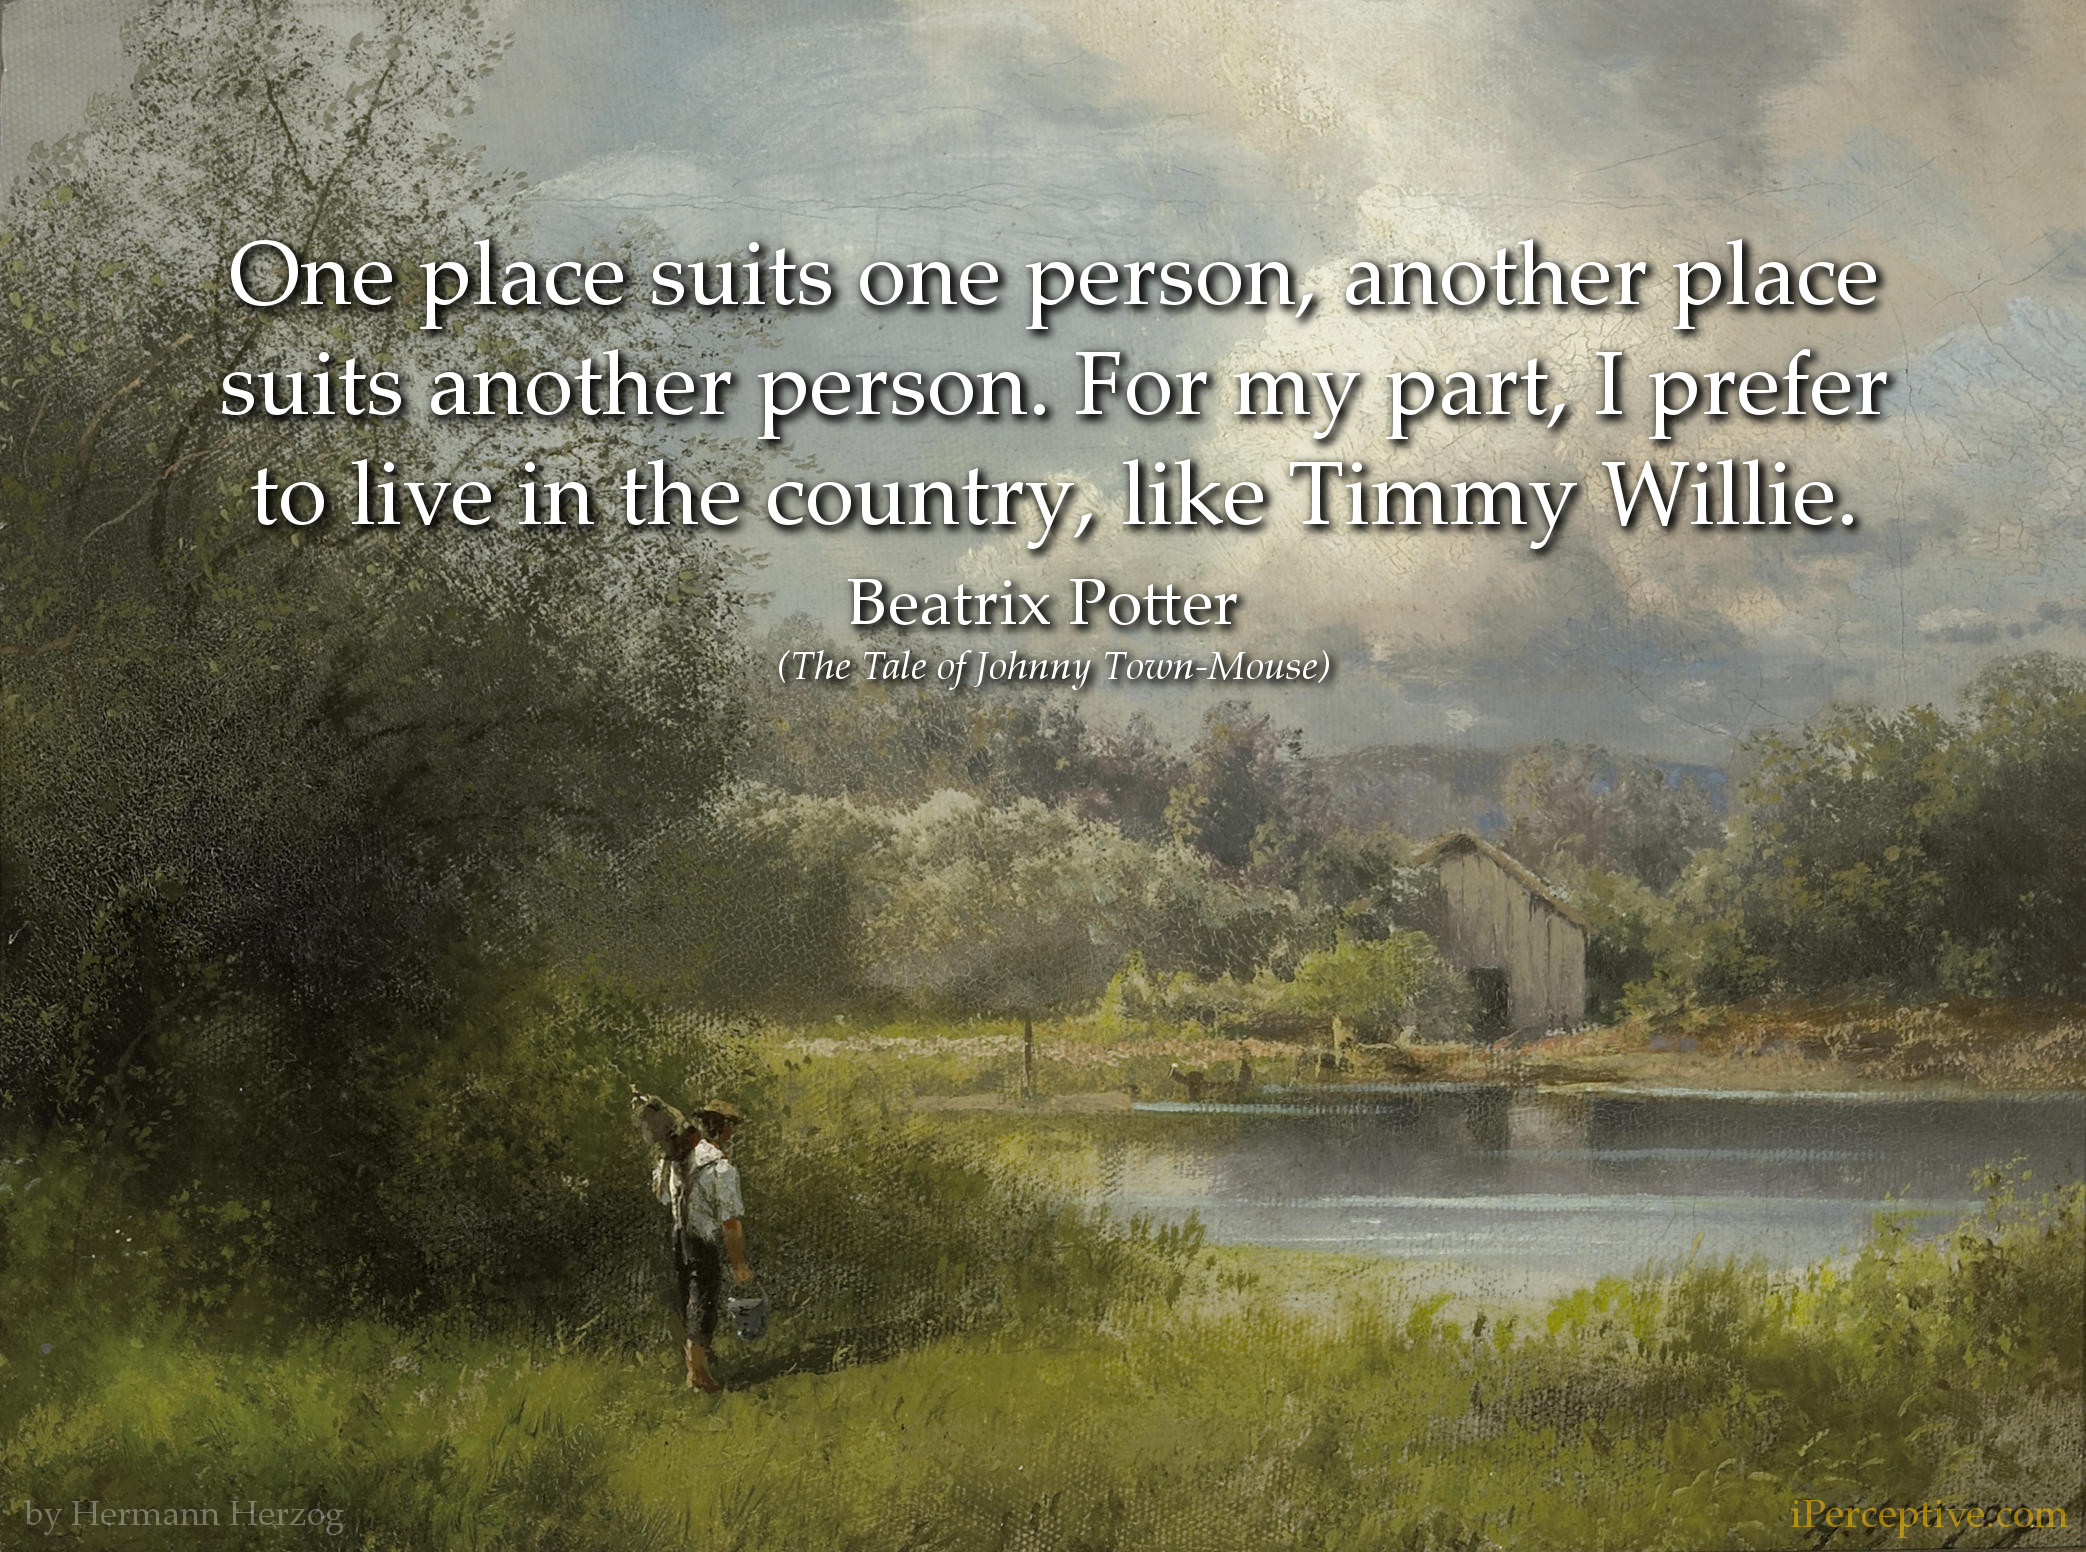 Beatrix Potter Quote: One place suits one person, another place suits another person. For my part...